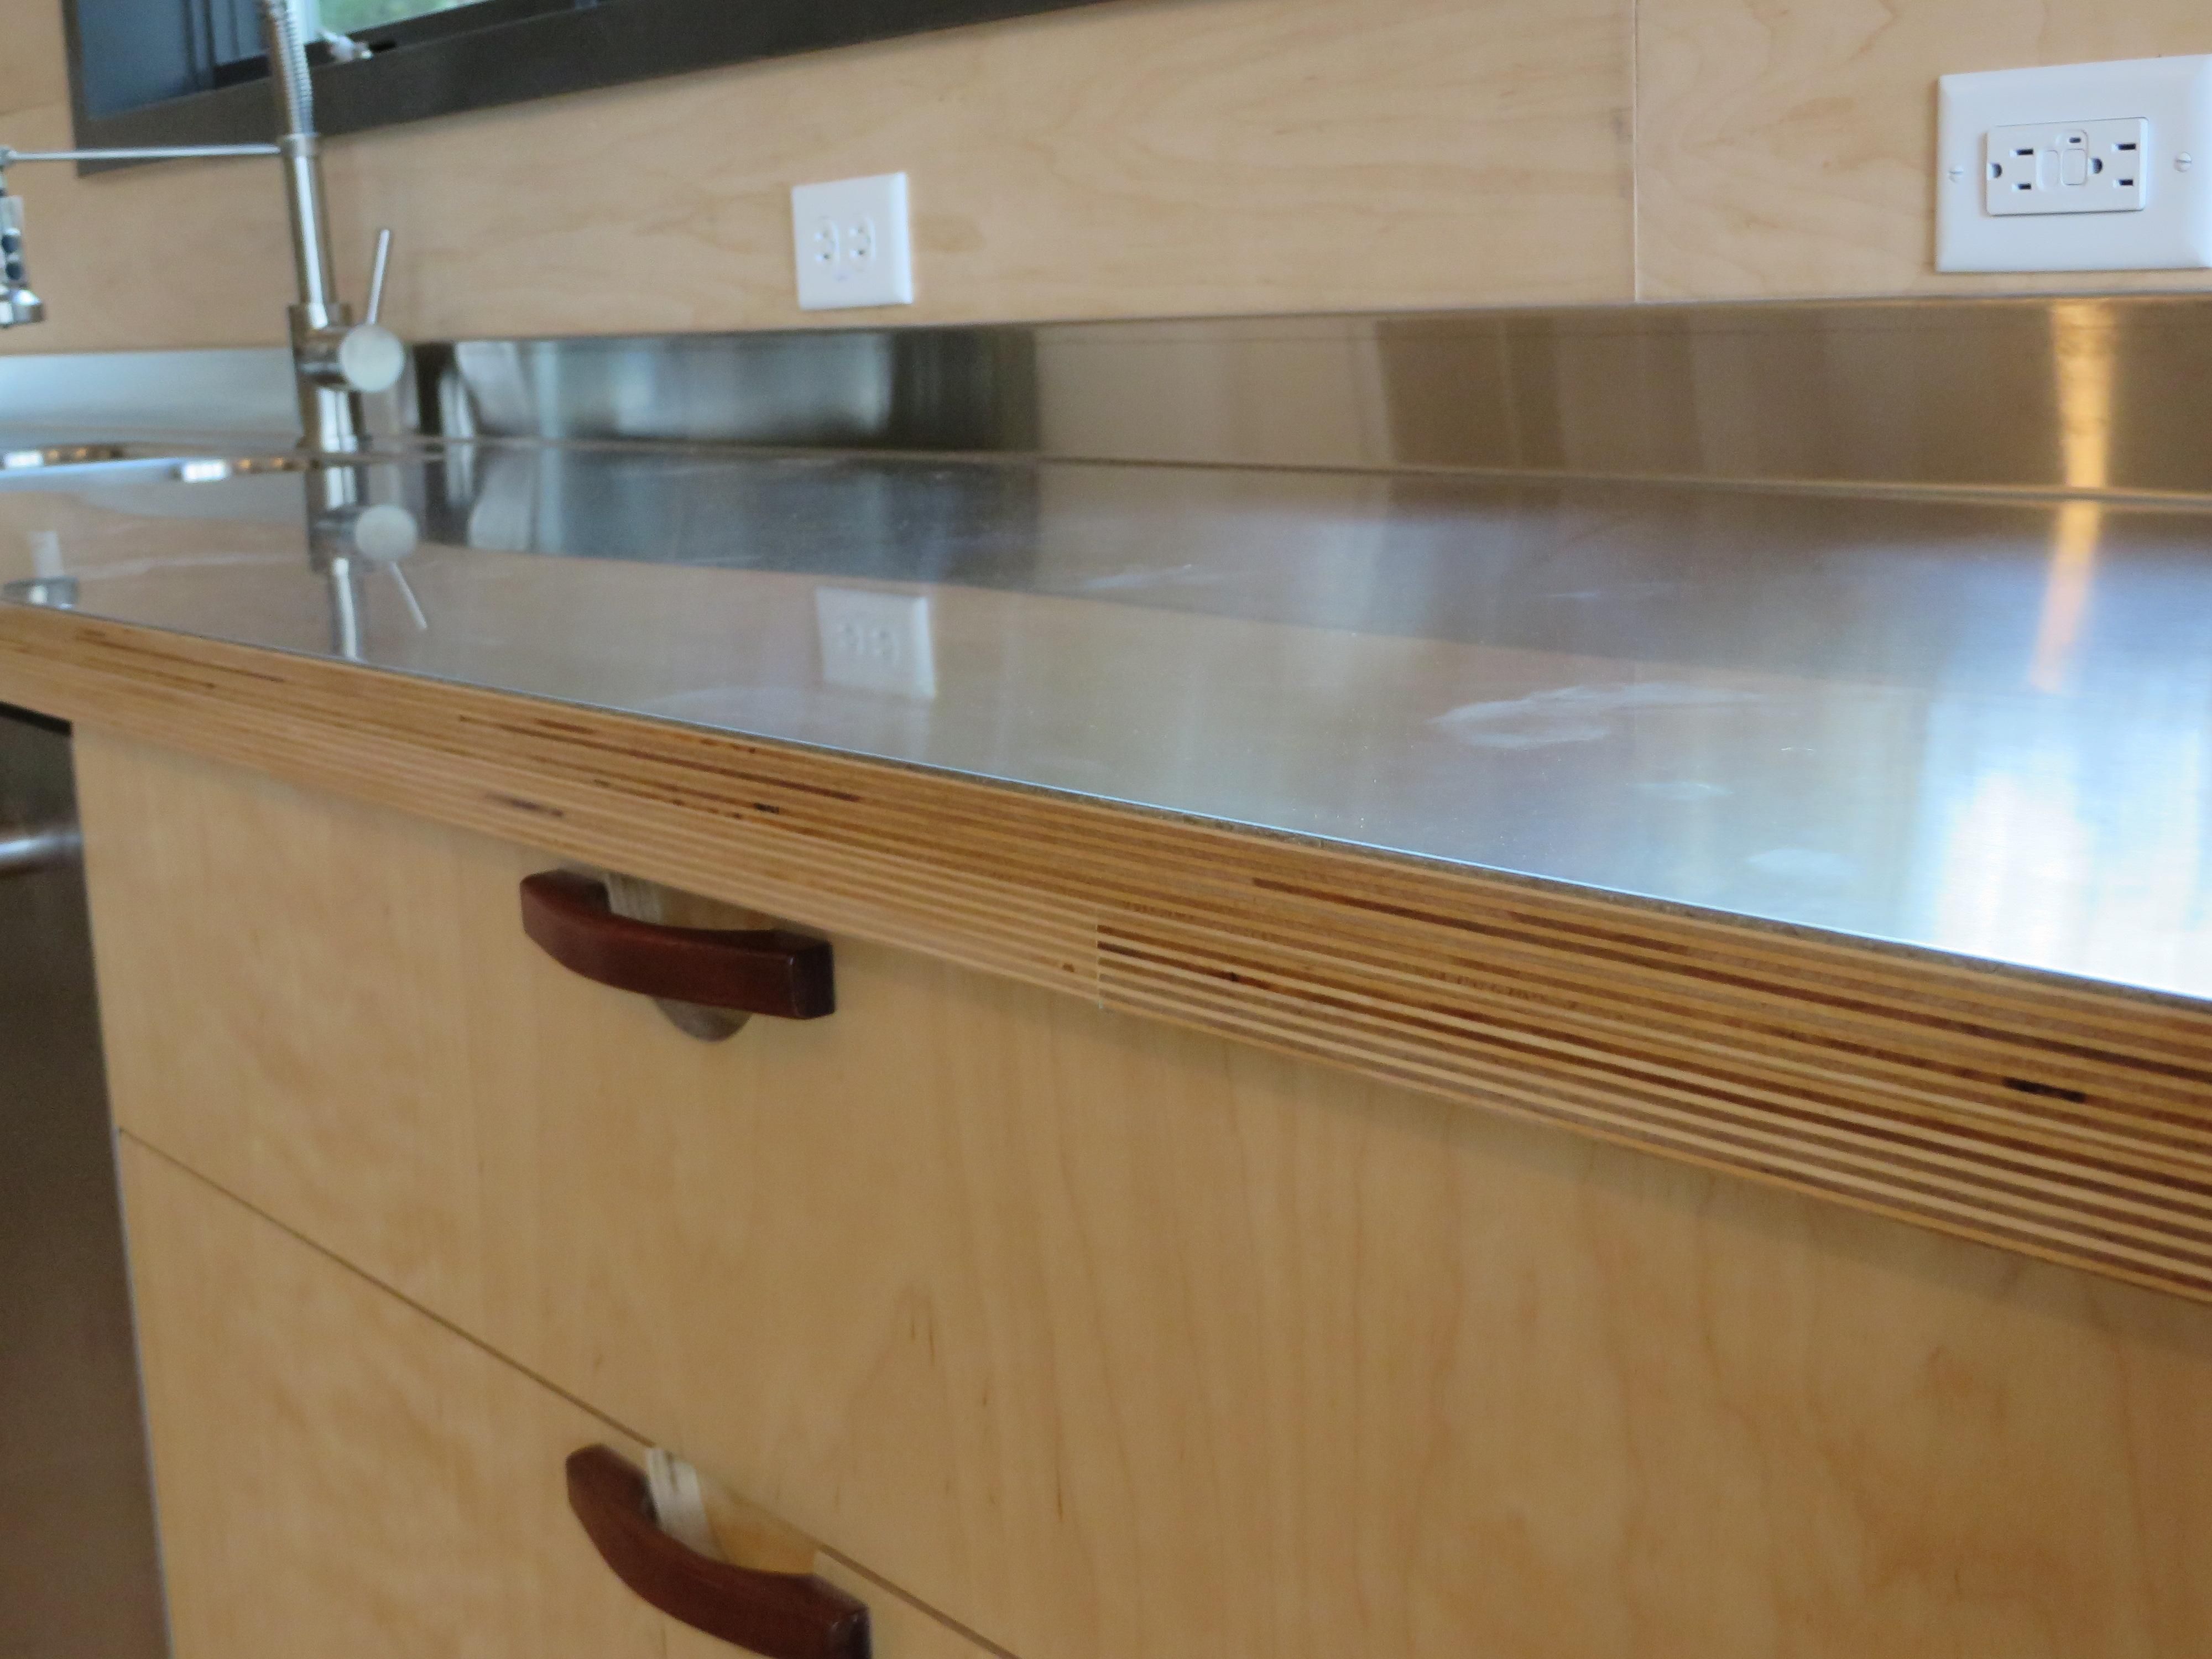 Stainless steel kitchen work surfaces - Stainless Steel Kitchen Work Surfaces Your Diy Stainless Steel Countertop Fabrication Guide In The Corner Download